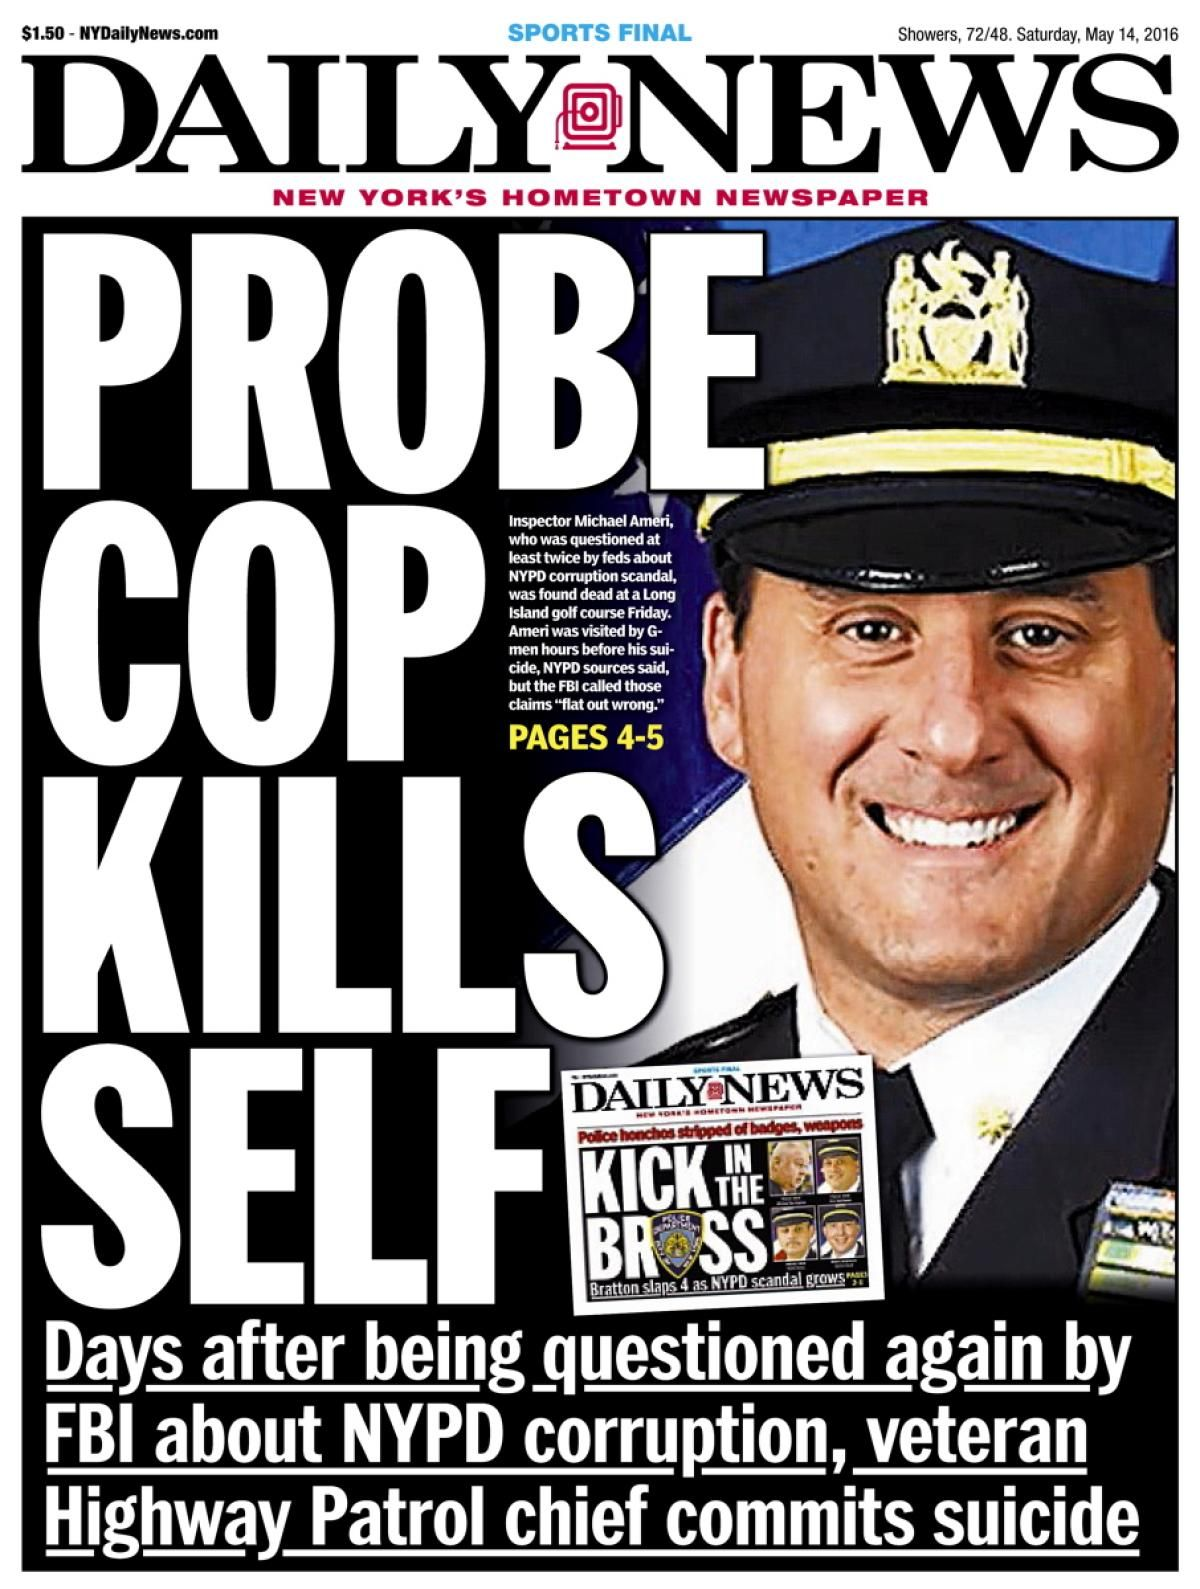 May 14, 2016: NYPD Inspector Michael Ameri shoots himself in the head in a departmental car near the Bergen Point Golf Course in West Babylon, L.I. Ameri had recently been questioned twice by the FBI during its investigation of an NYPD scandal involving two businessmen, Jeremy Reichberg and Jona Rechnitz, with ties to Mayor de Blasio.